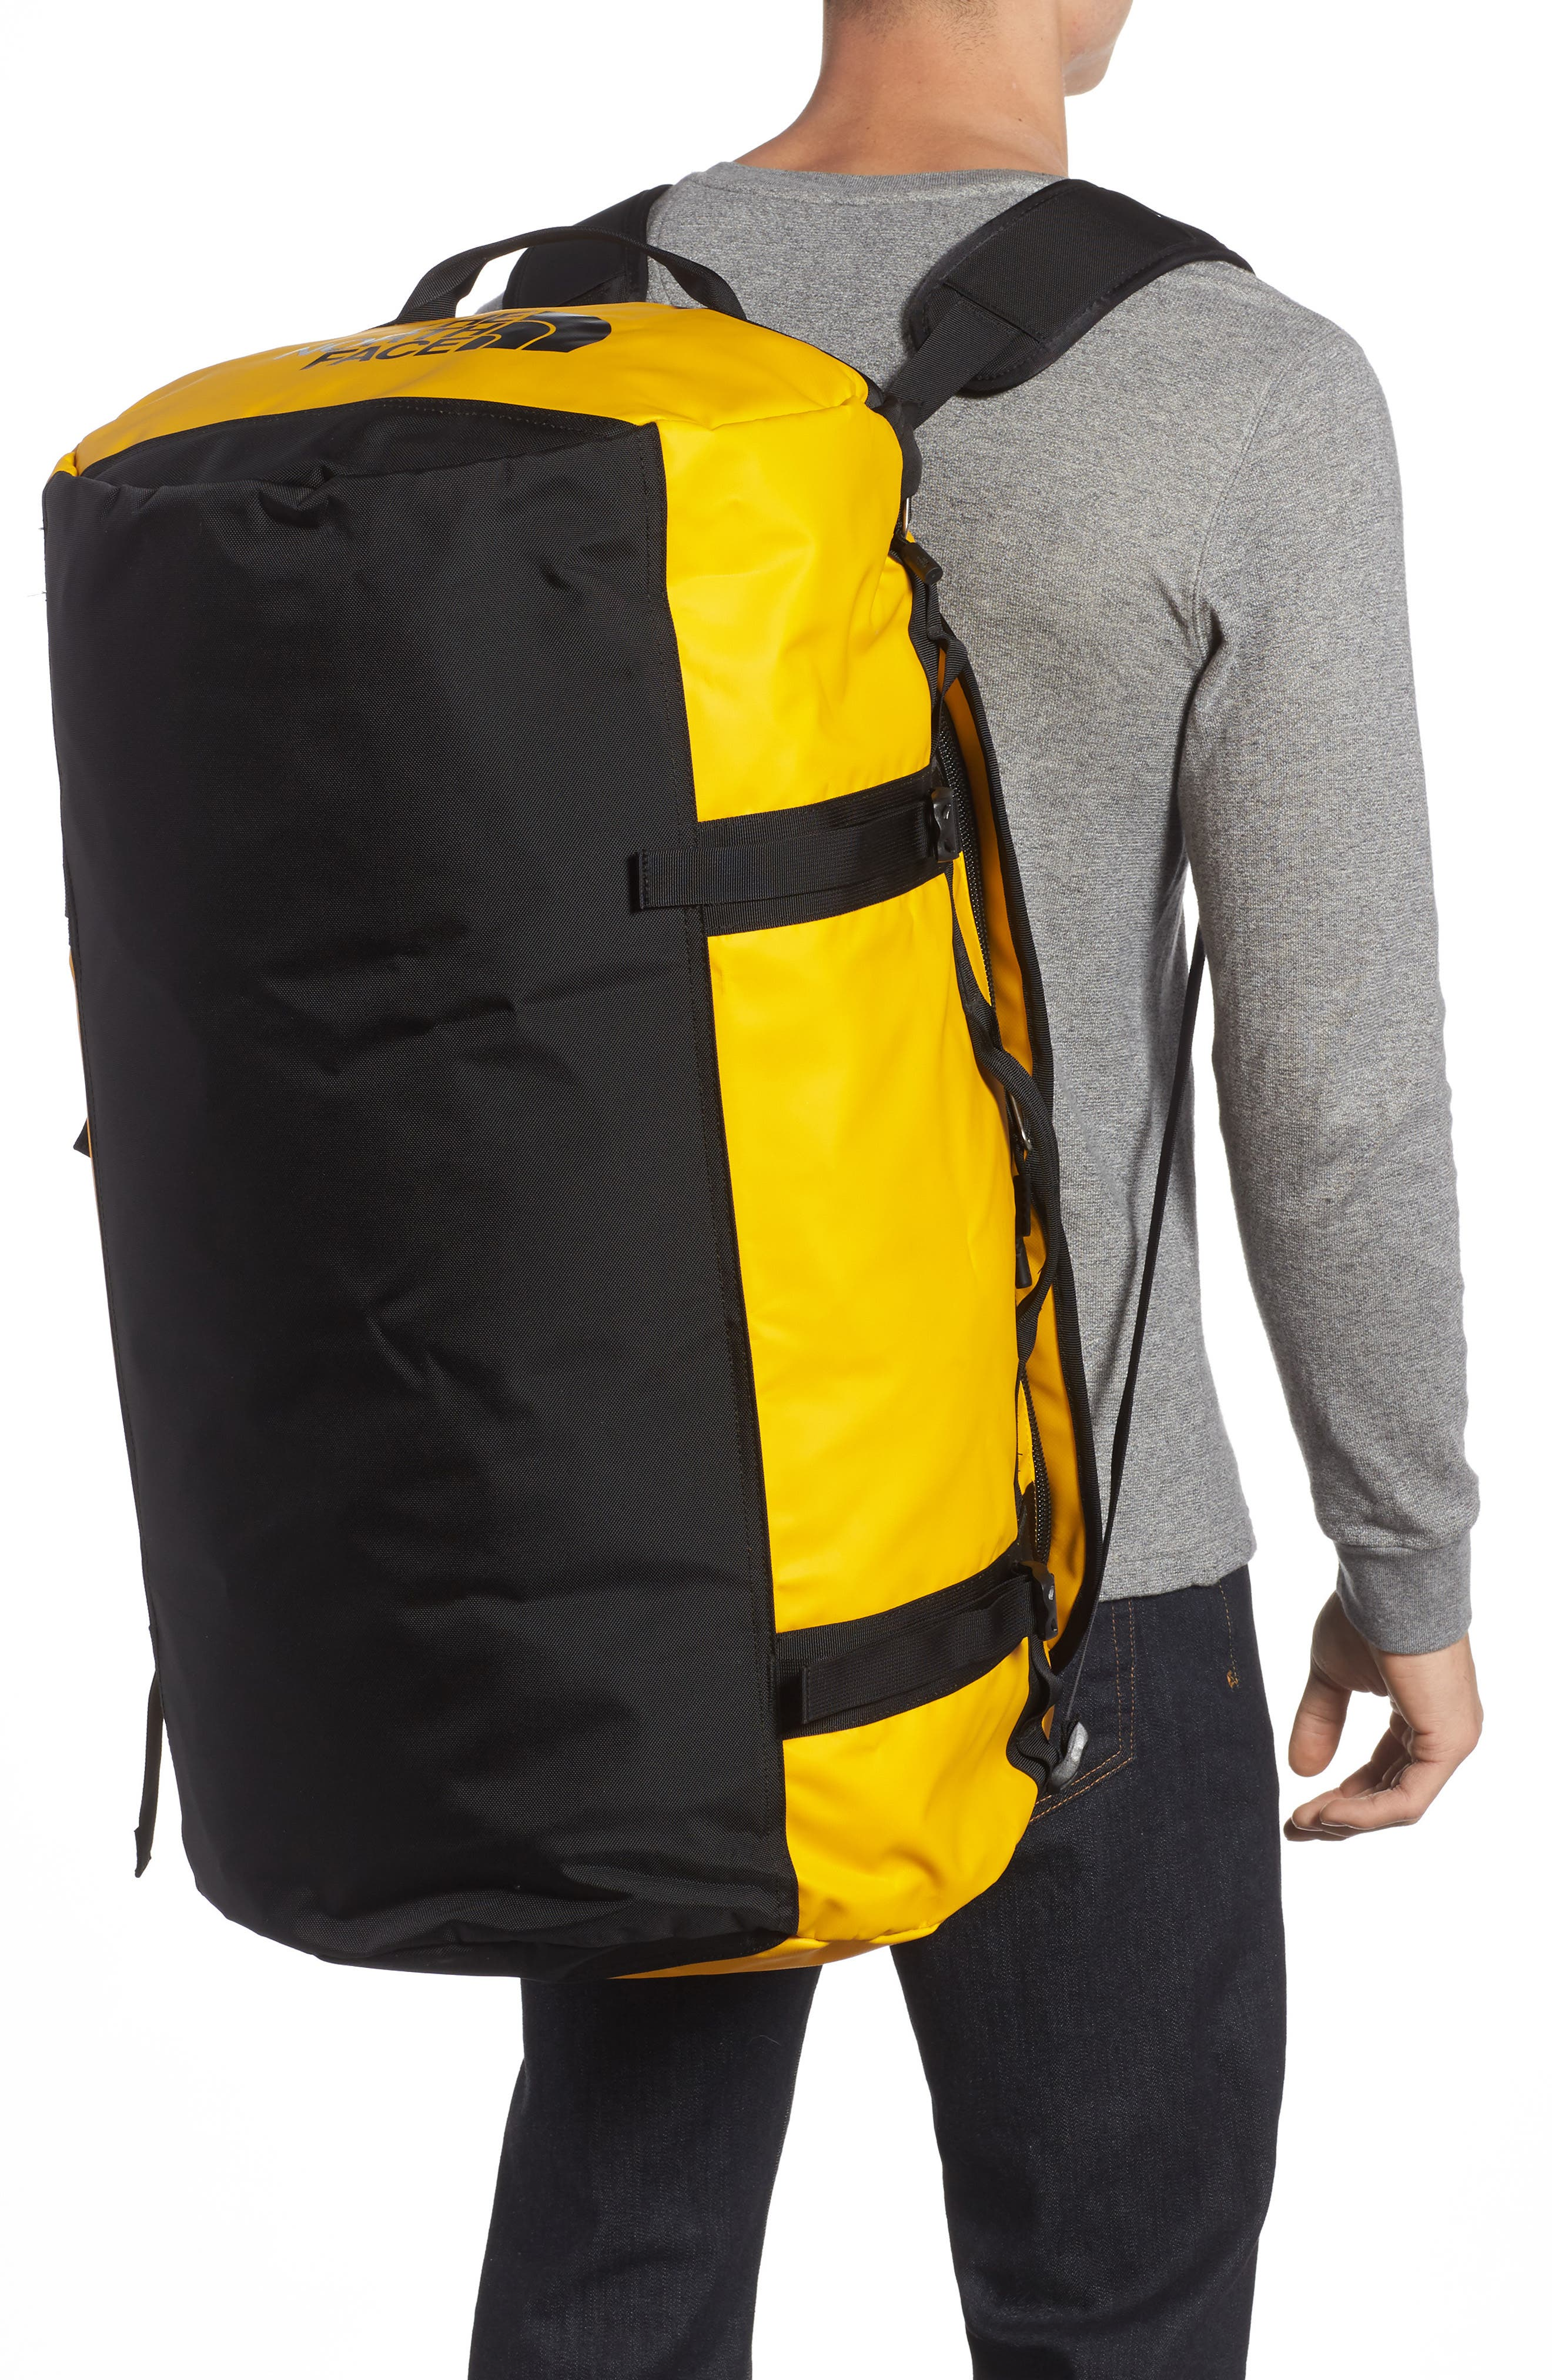 Alternate Image 2  - The North Face 'Base Camp - Large' Duffel Bag